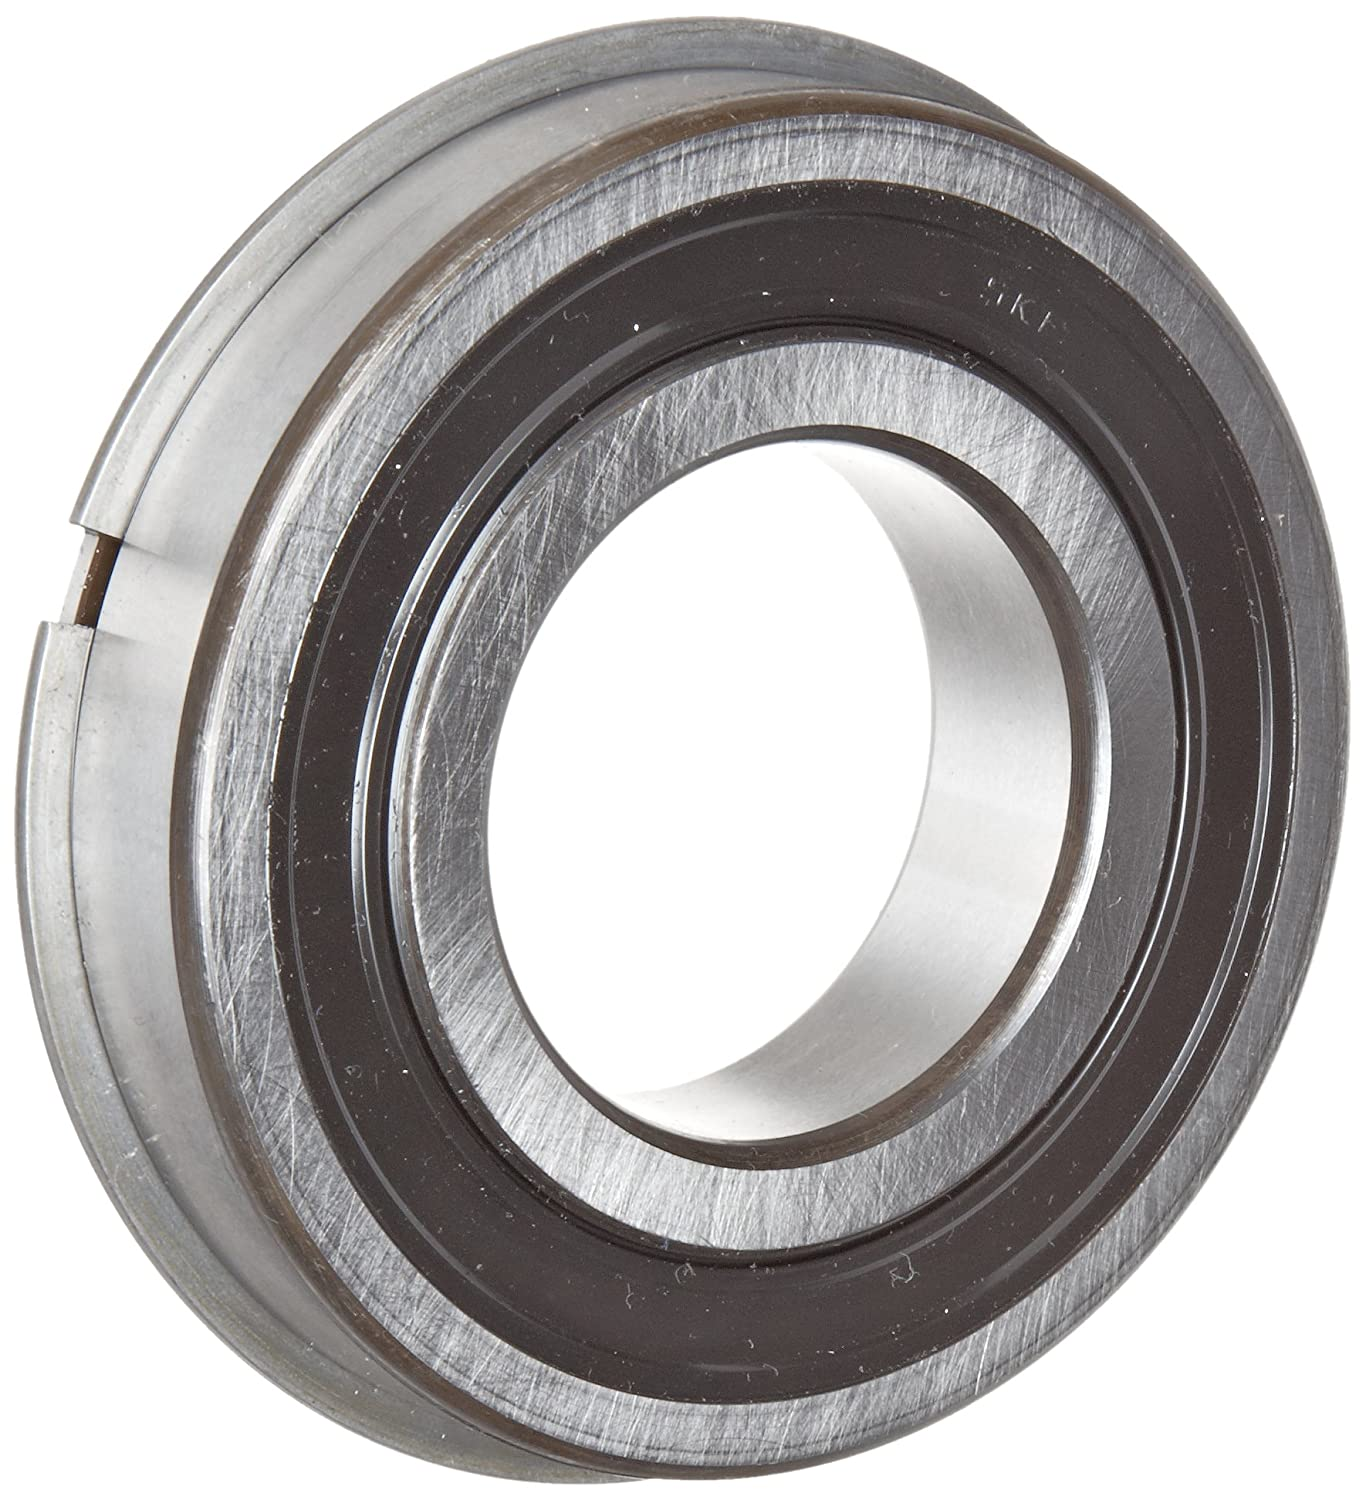 12mm Width Double Sealed Deep Groove Design 17mm Bore SKF 6203 2RSNRJEM Light Series Deep Groove Ball Bearing Contact Snap Ring 40mm OD ABEC 1 Precision Steel Cage C3 Clearance 2150.00 pounds Dynamic Load Capa 1070.0 pounds Static Load Capacity